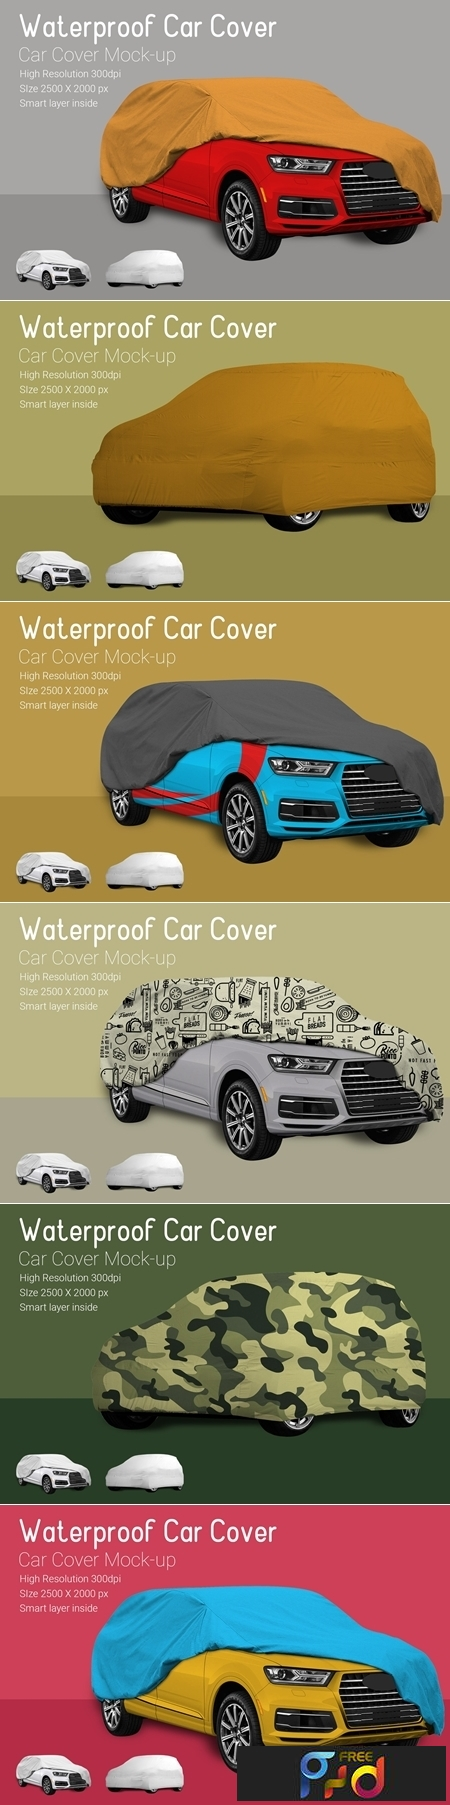 Car Cover Mock-Up 3726487 1